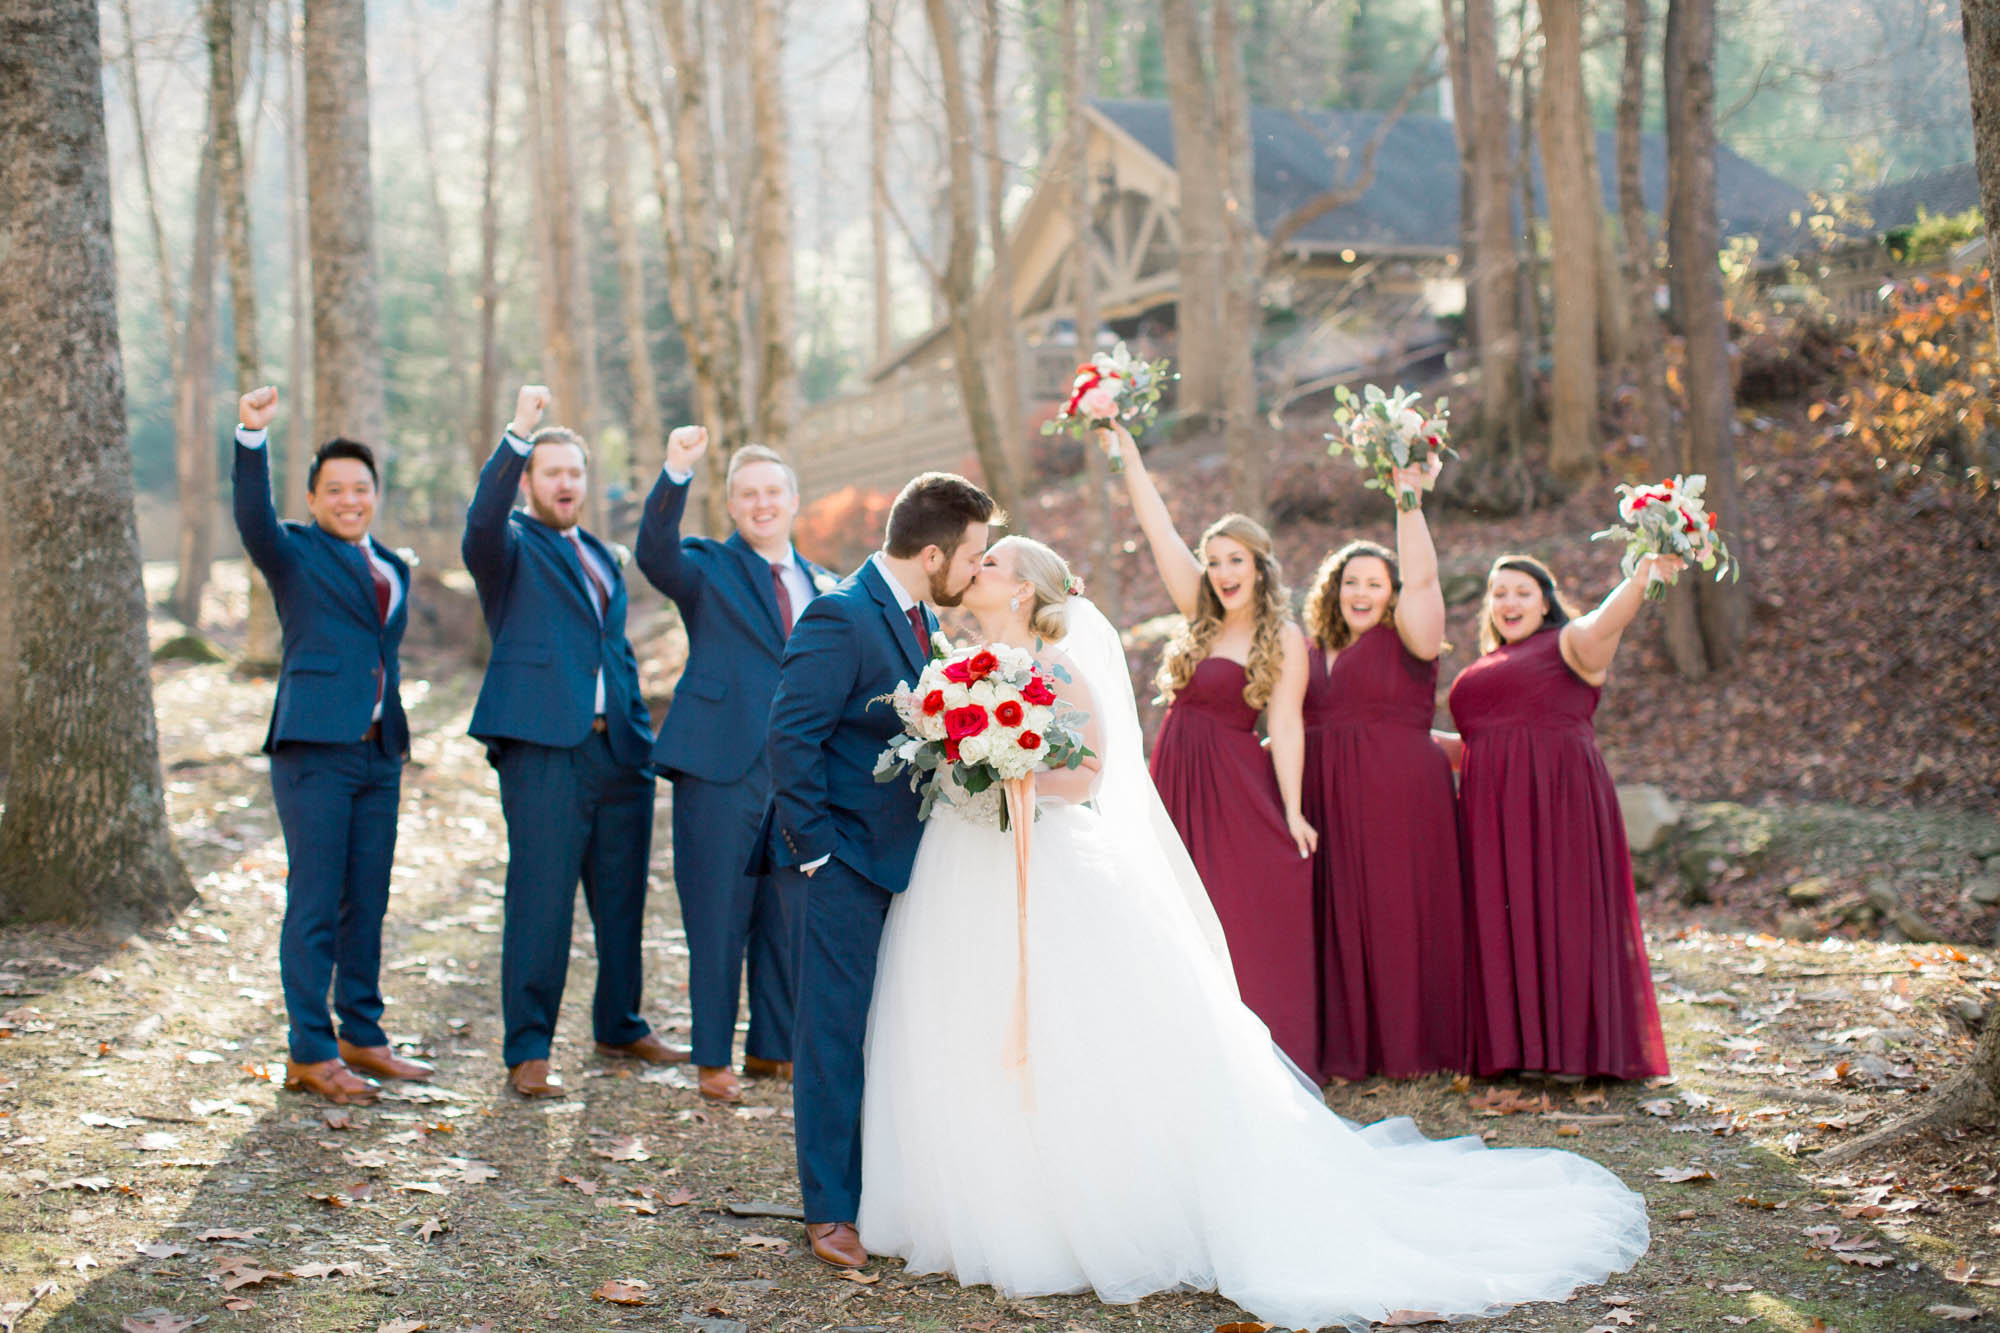 Bridal party mountain wedding Charlotte wedding photographer Andrews, NC